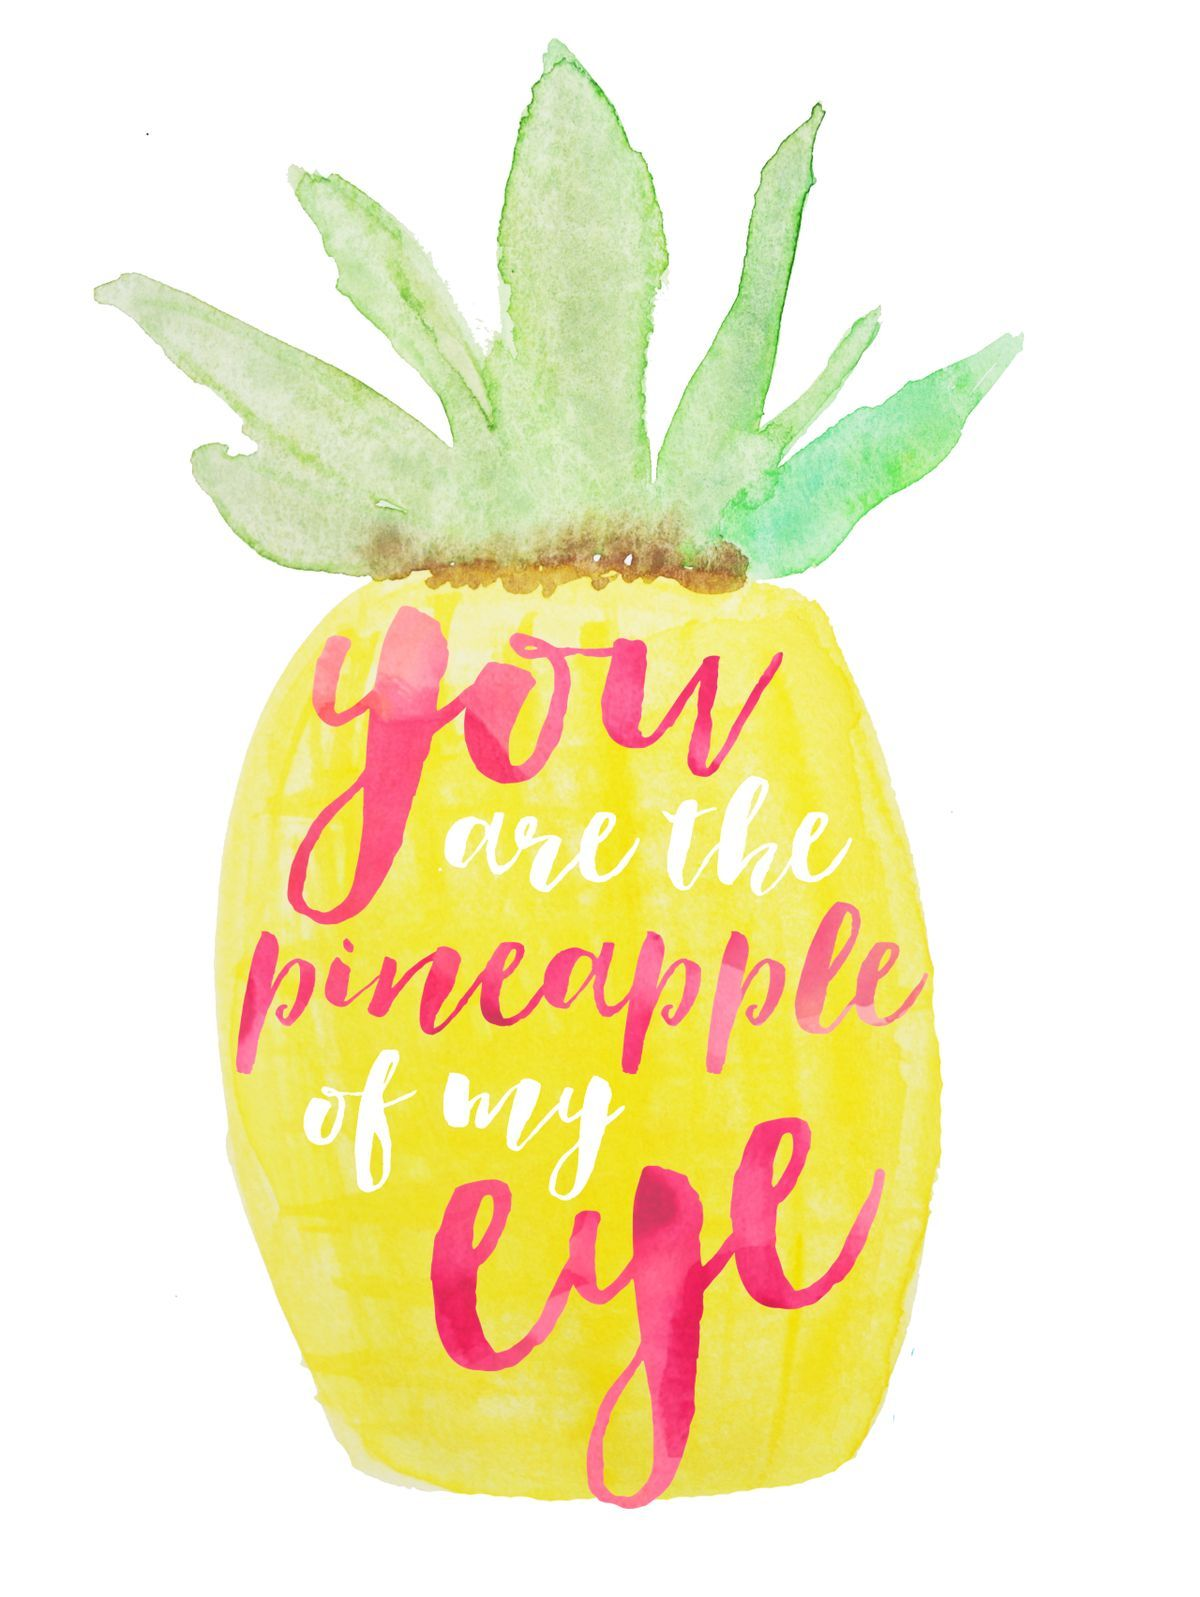 You Are The Pineapple Of My Eye Wonderful Words Cute